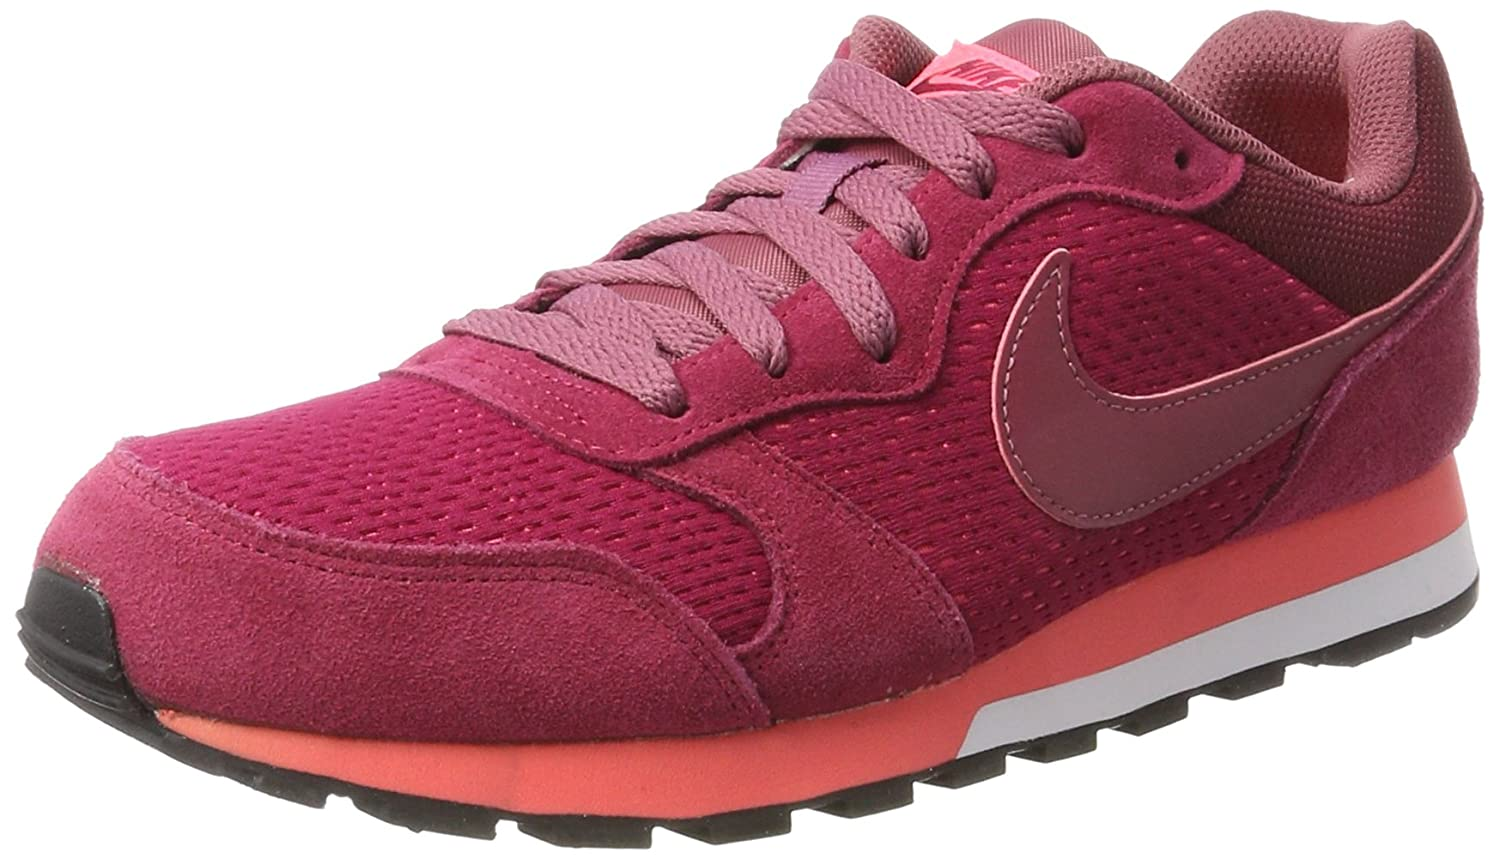 NIKE MD Runner Mode 2, Baskets Mode Runner Femme 37.5 EU|Rouge (Noble Red/Port-hot Punch) 08c15d